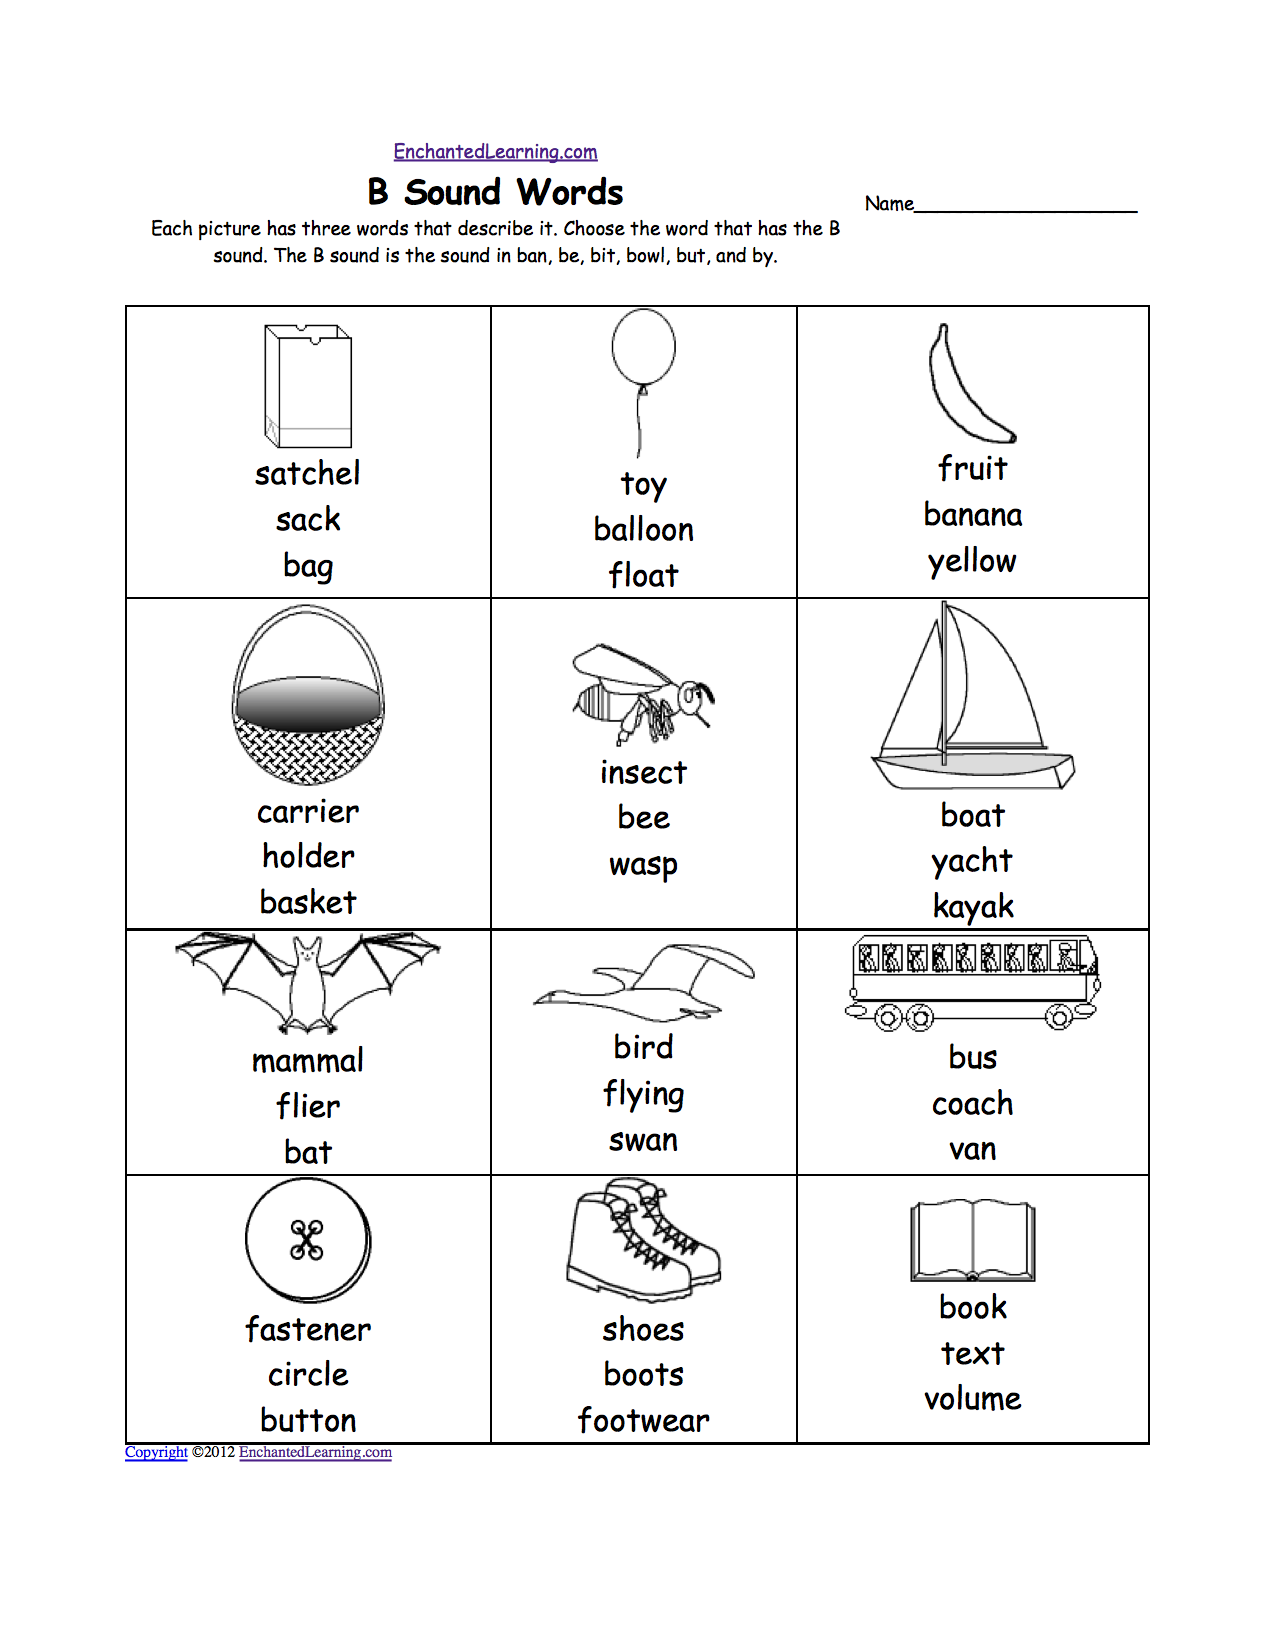 Weirdmailus  Remarkable Phonics Worksheets Multiple Choice Worksheets To Print  With Inspiring Quotbquot Sound Phonics Worksheet Multiple Choice Each Picture Has Three Words That Describe It Choose The Word That Has A Quotbquot Sound The Quotbquot Sound Is The Sound  With Amazing Evaluate Exponents Worksheet Also Budgeting For A Baby Worksheet In Addition Free Spanish Worksheets For Beginners And Problem Solving Strategies Worksheet As Well As One Survivor Remembers Worksheet Additionally Change Y To I And Add Es Worksheet From Enchantedlearningcom With Weirdmailus  Inspiring Phonics Worksheets Multiple Choice Worksheets To Print  With Amazing Quotbquot Sound Phonics Worksheet Multiple Choice Each Picture Has Three Words That Describe It Choose The Word That Has A Quotbquot Sound The Quotbquot Sound Is The Sound  And Remarkable Evaluate Exponents Worksheet Also Budgeting For A Baby Worksheet In Addition Free Spanish Worksheets For Beginners From Enchantedlearningcom